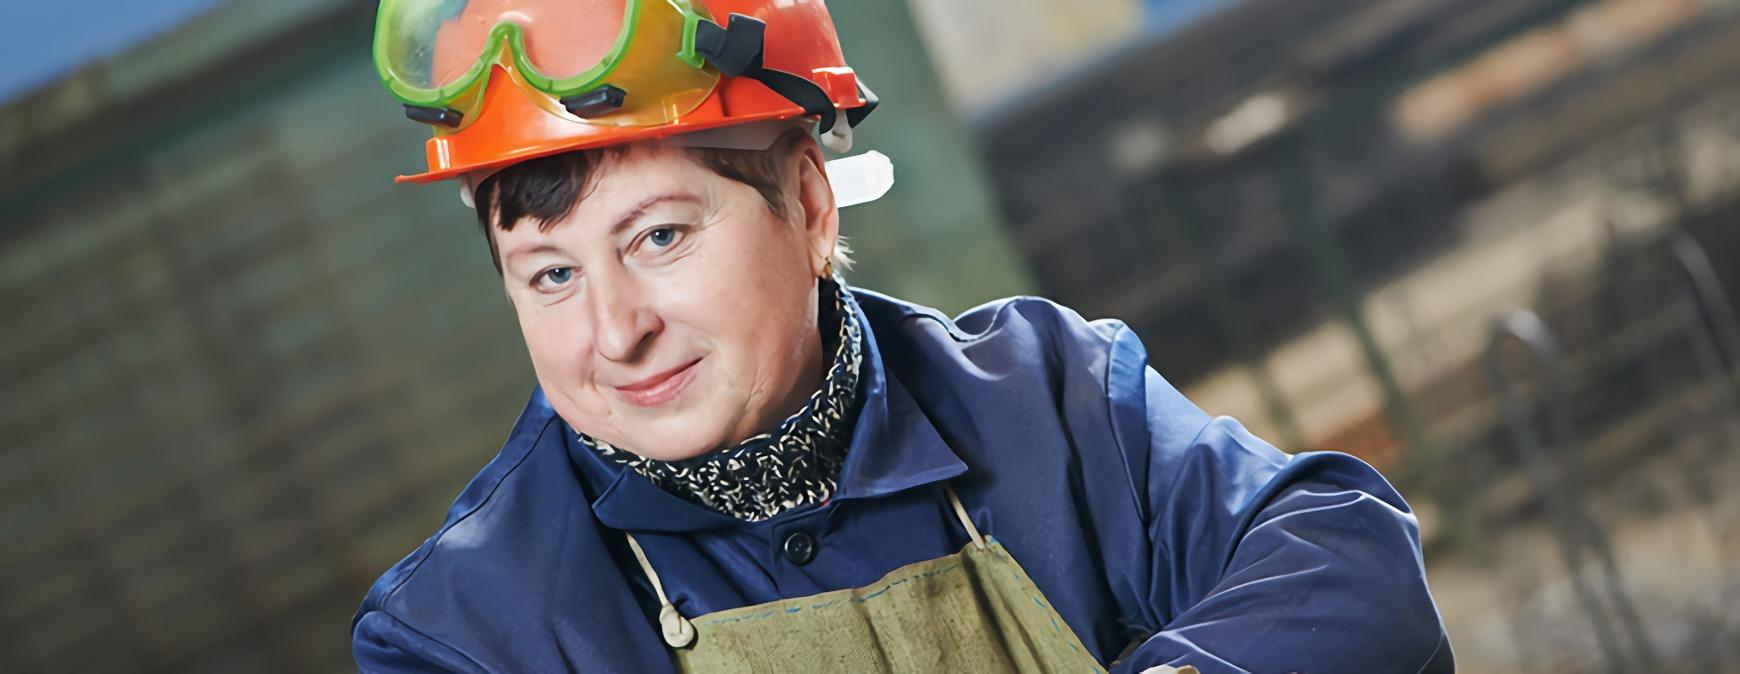 female welder in hard hat